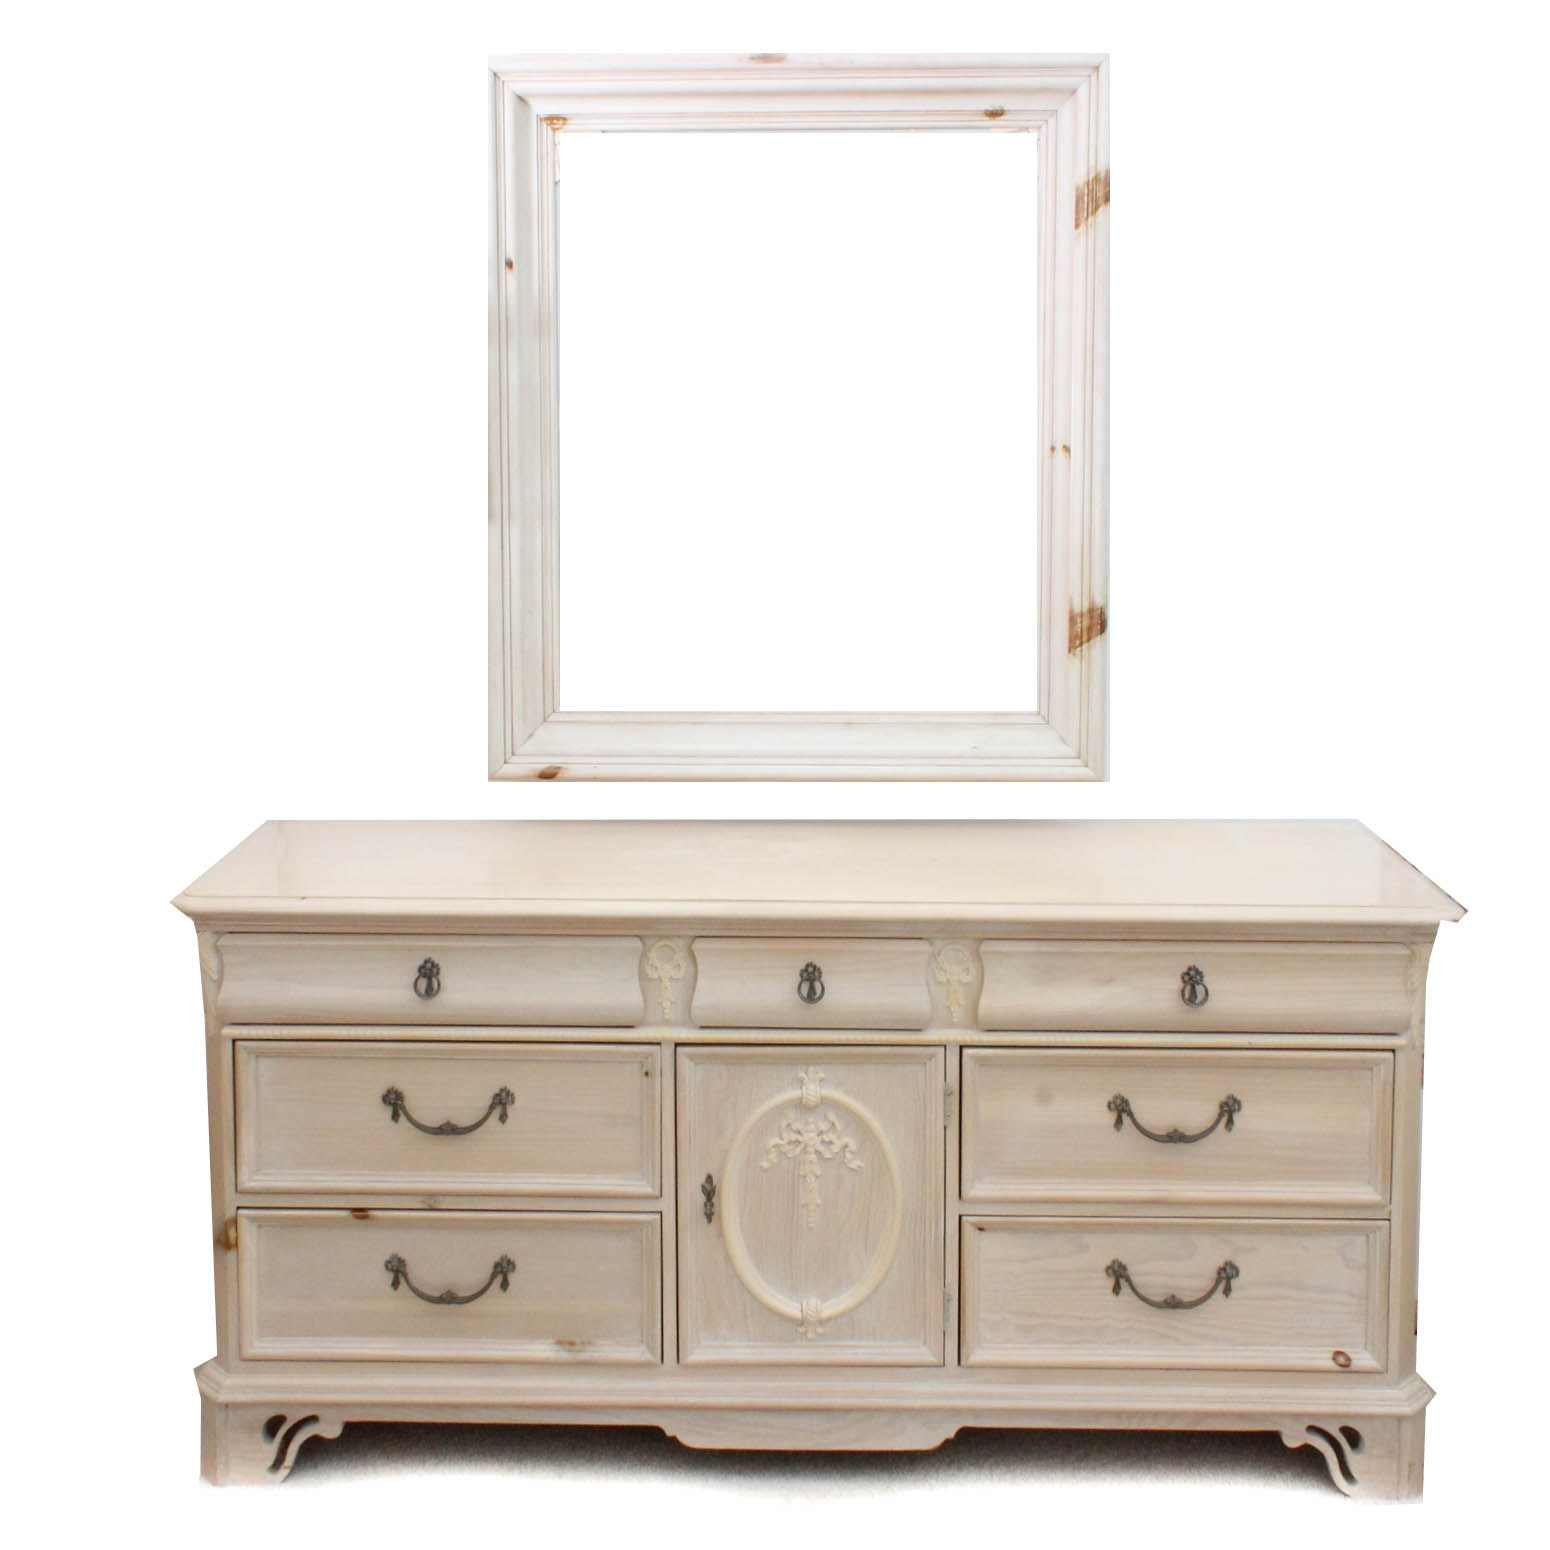 Rustic Wooden Dresser with Mirror